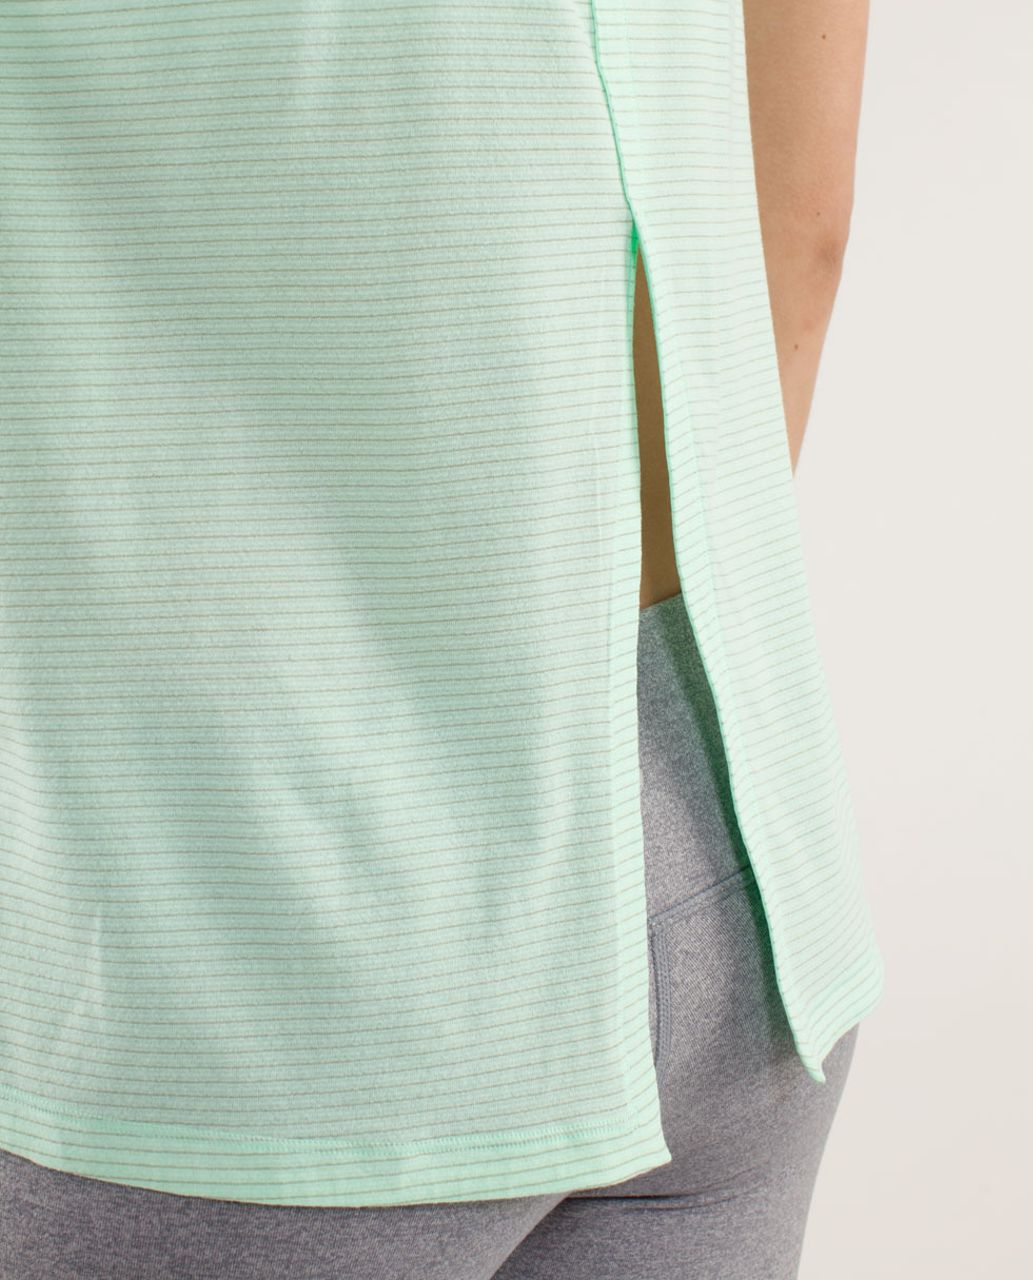 Lululemon Run:  Silver Lining Tank - Fresh Teal